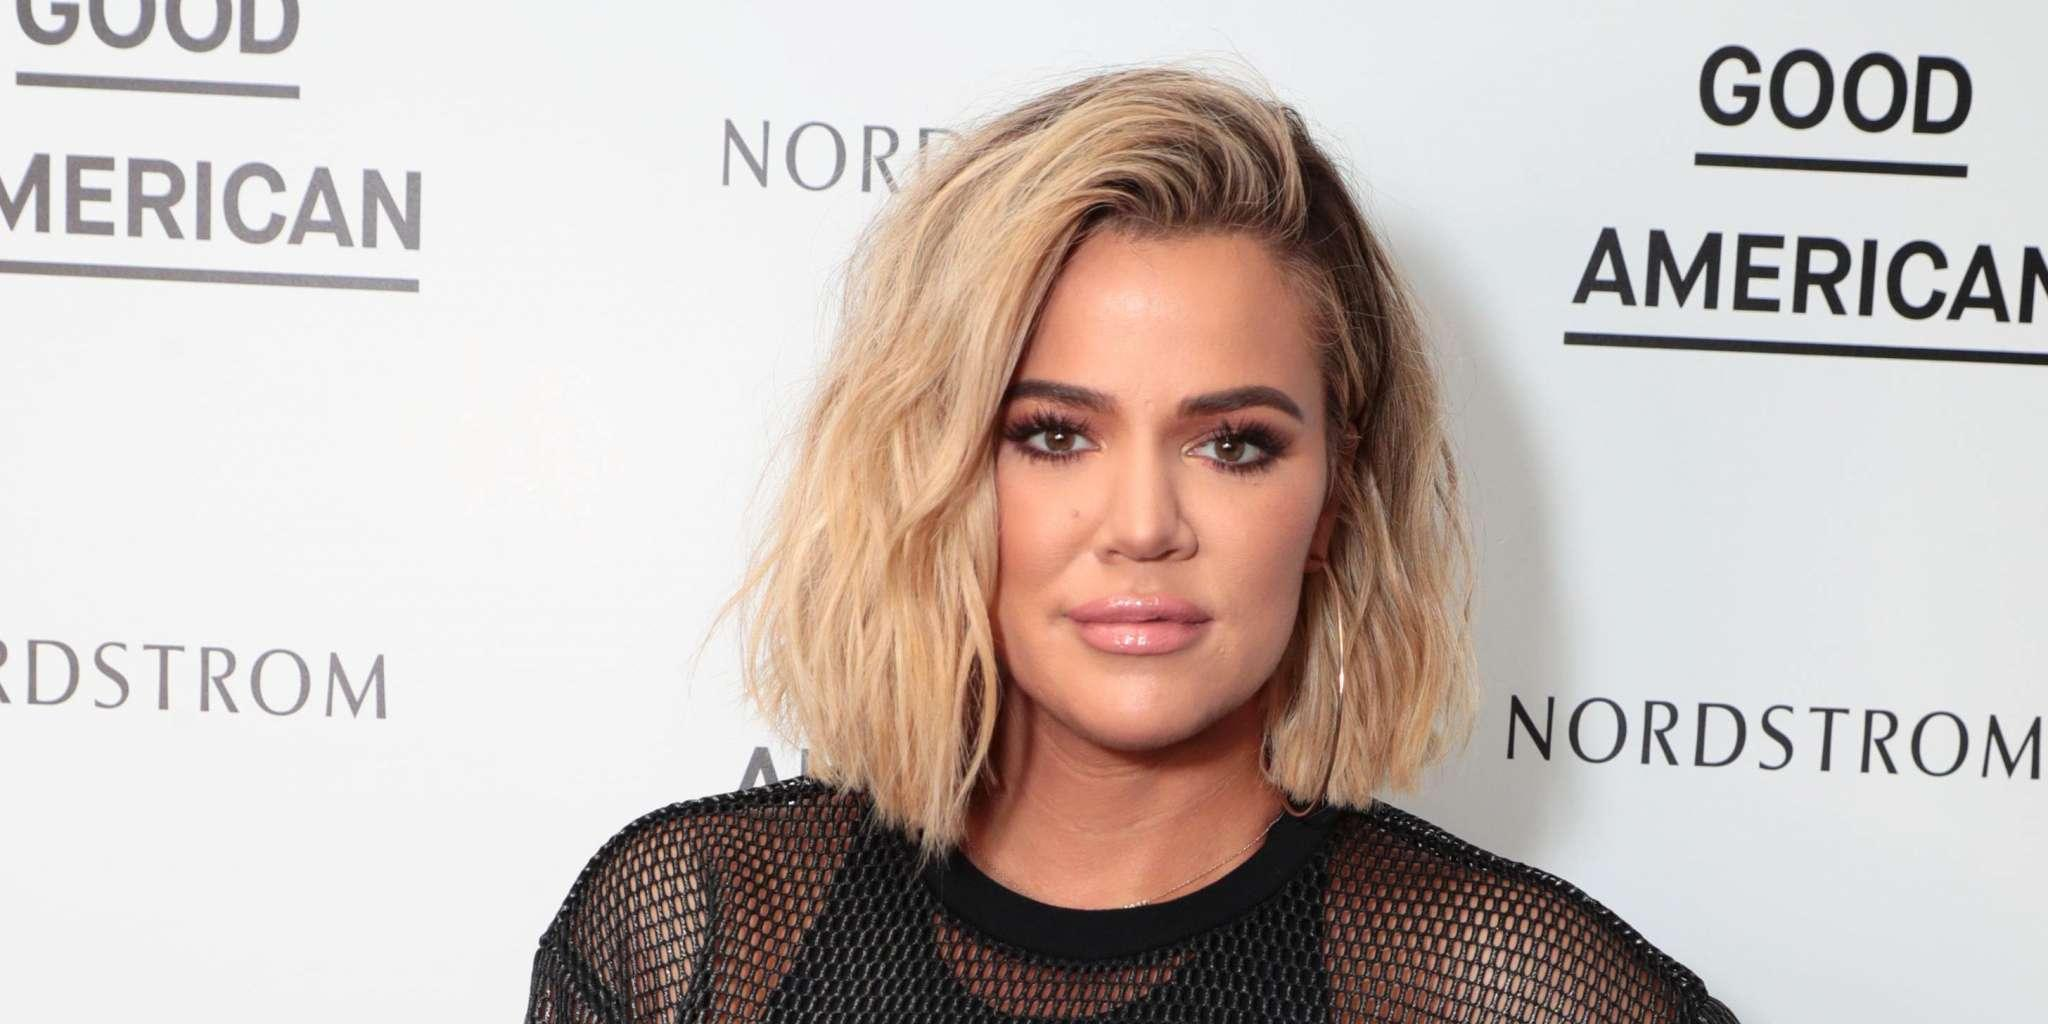 Khloe Kardashian Was Reportedly Warned By A Psychic About Tristan's Cheating Before The Jordyn Woods Drama - Watch The Prediction In The Video